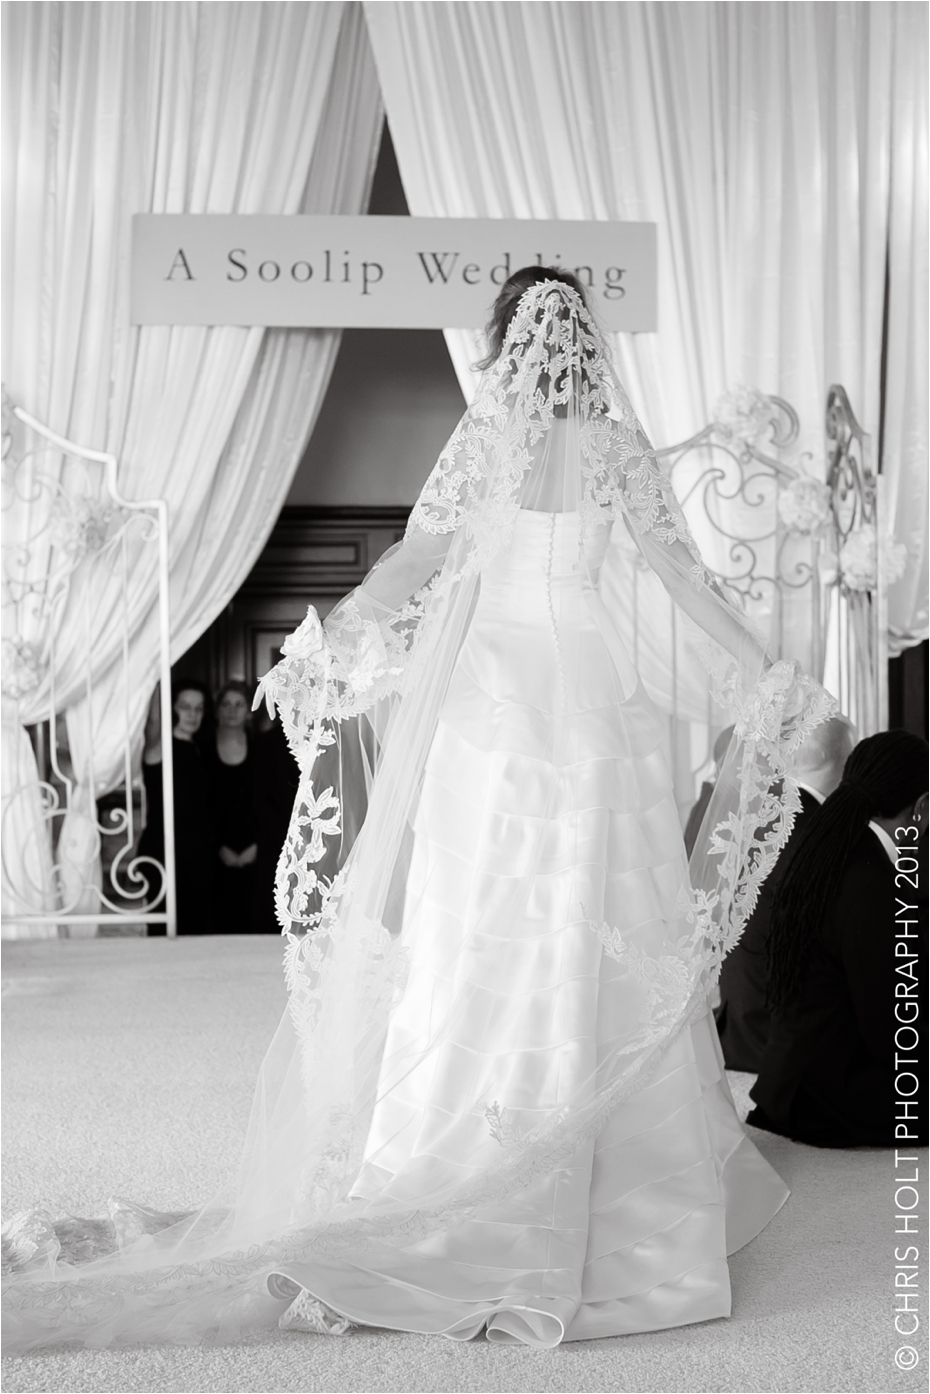 SOOLIPWEDDING_019.jpg